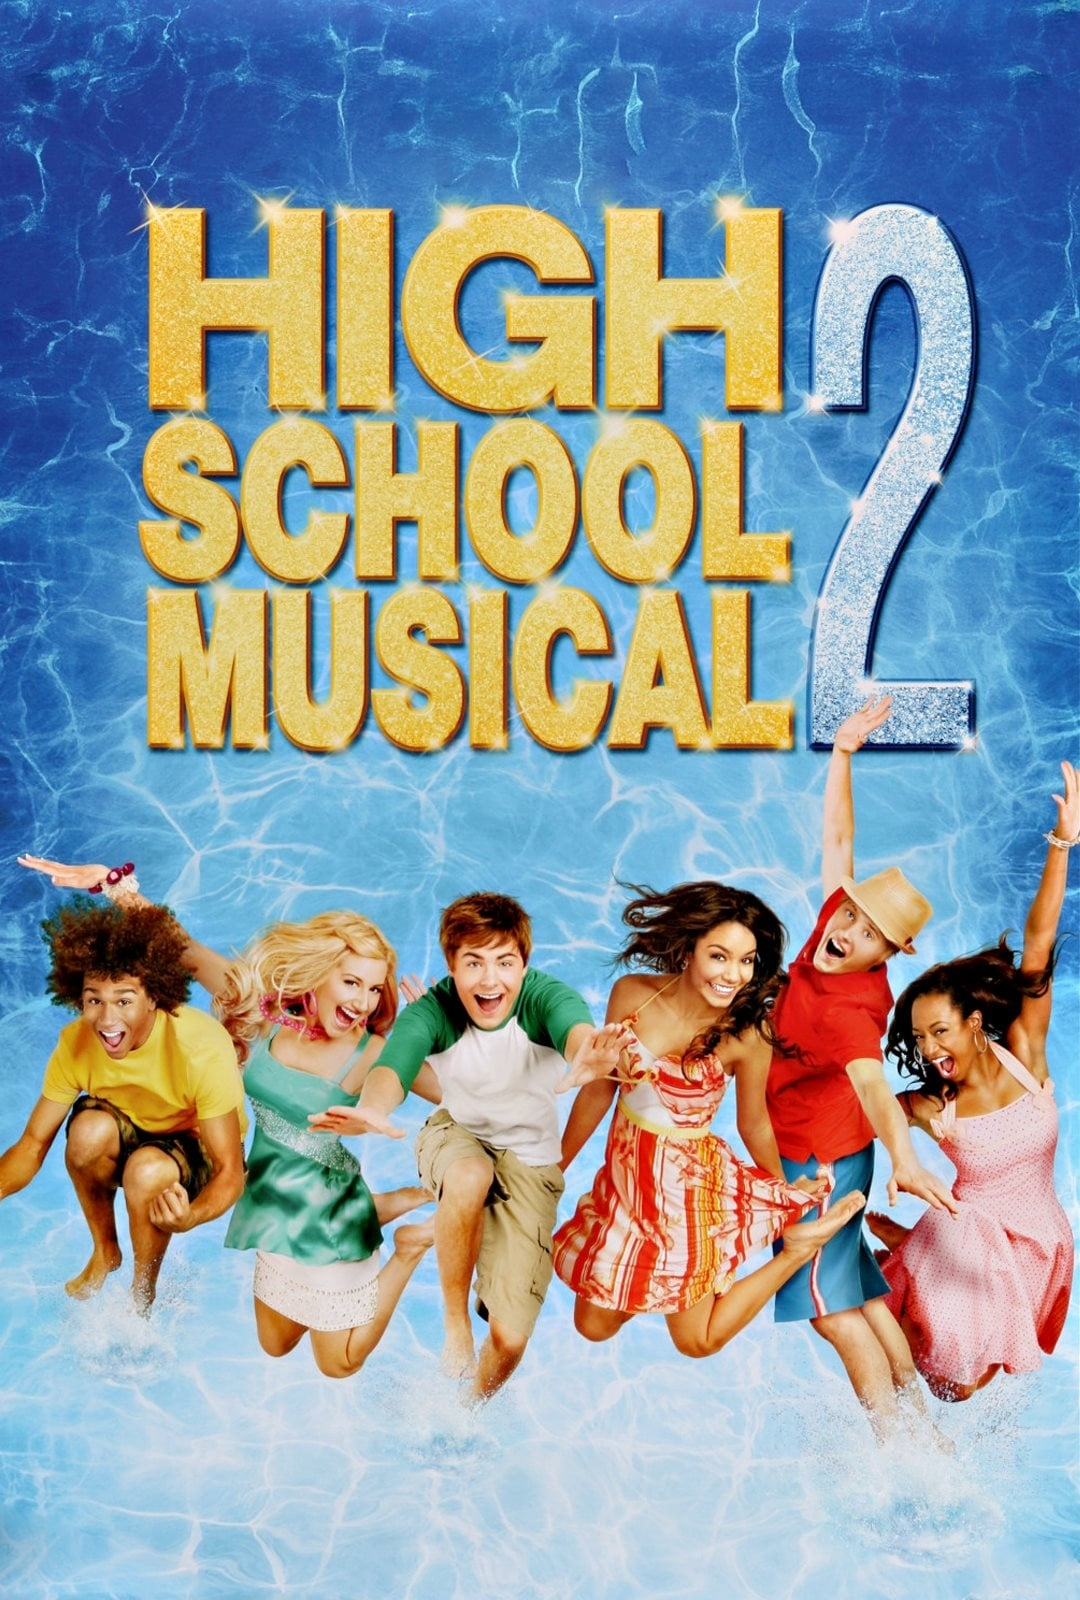 High School Musical 2 Ganzer Film Deutsch Kostenlos